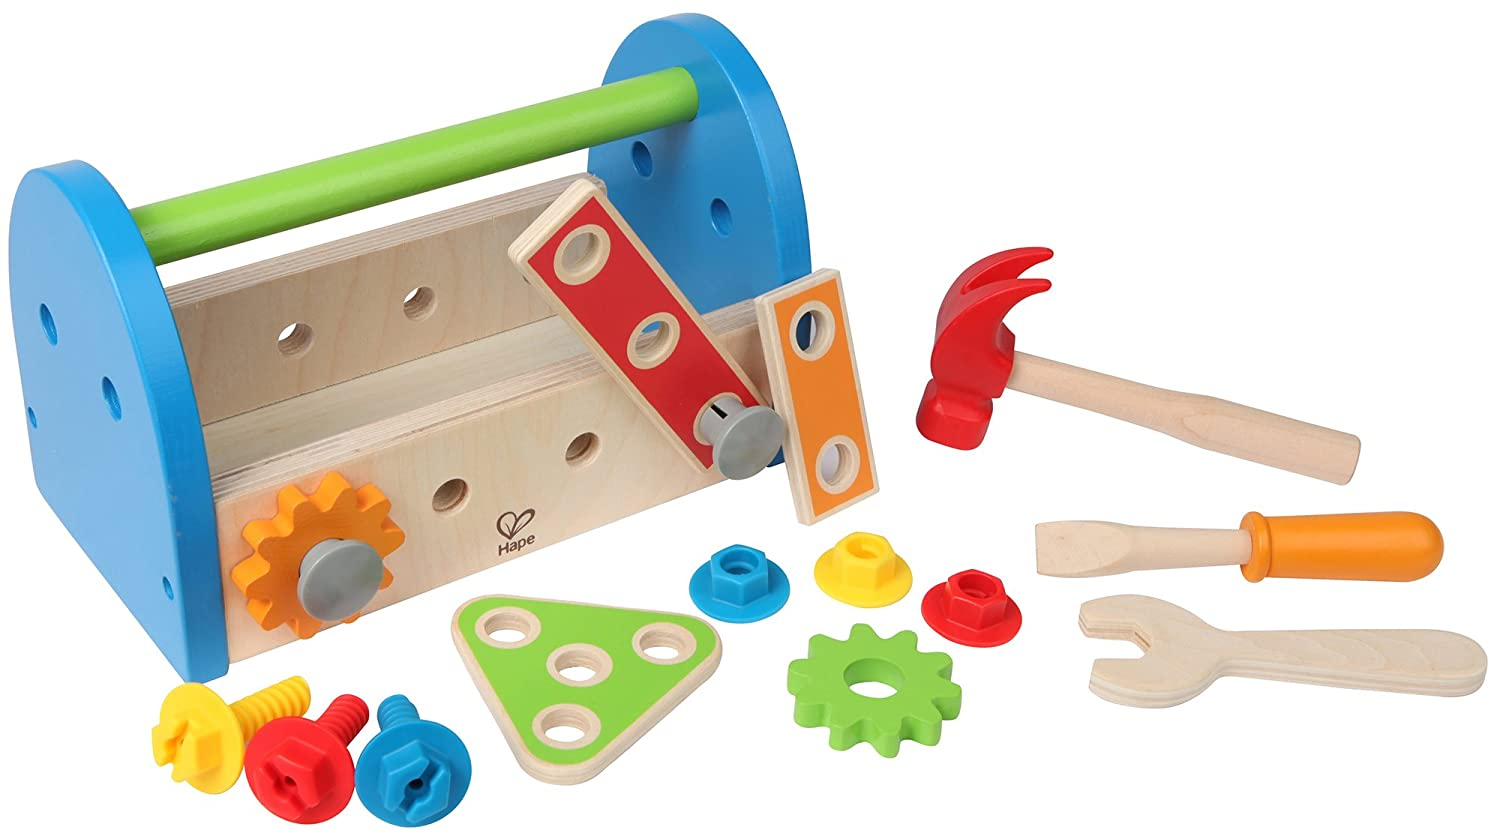 Hape Fix It Kid's Wooden Tool Box and Accessory Play Set E3001